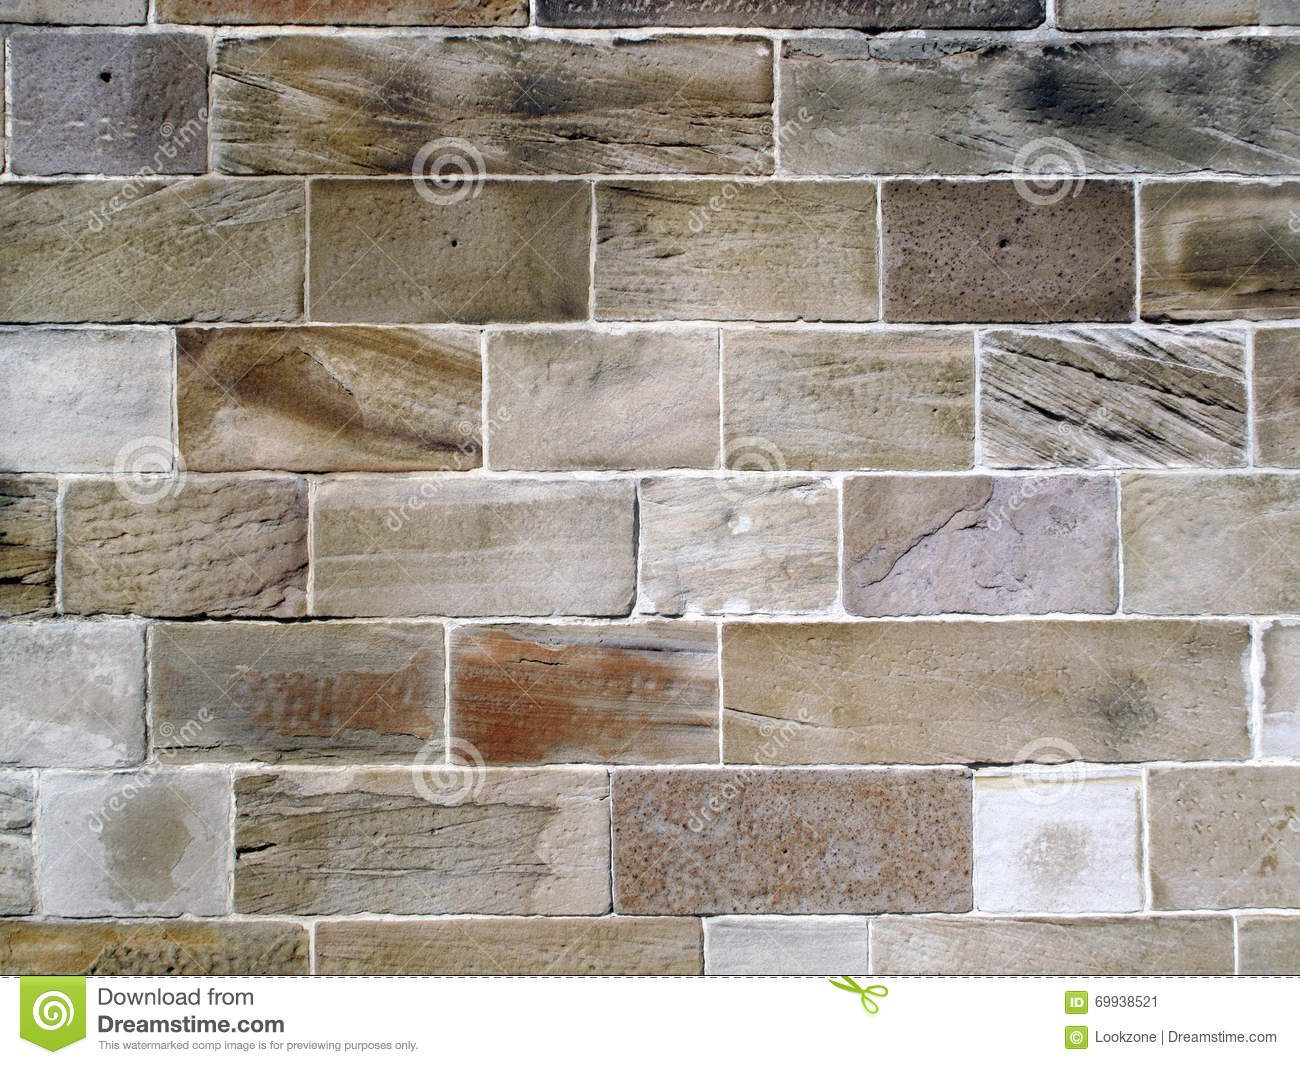 Sandstone Slabs Stock Photos, Images, & Pictures.